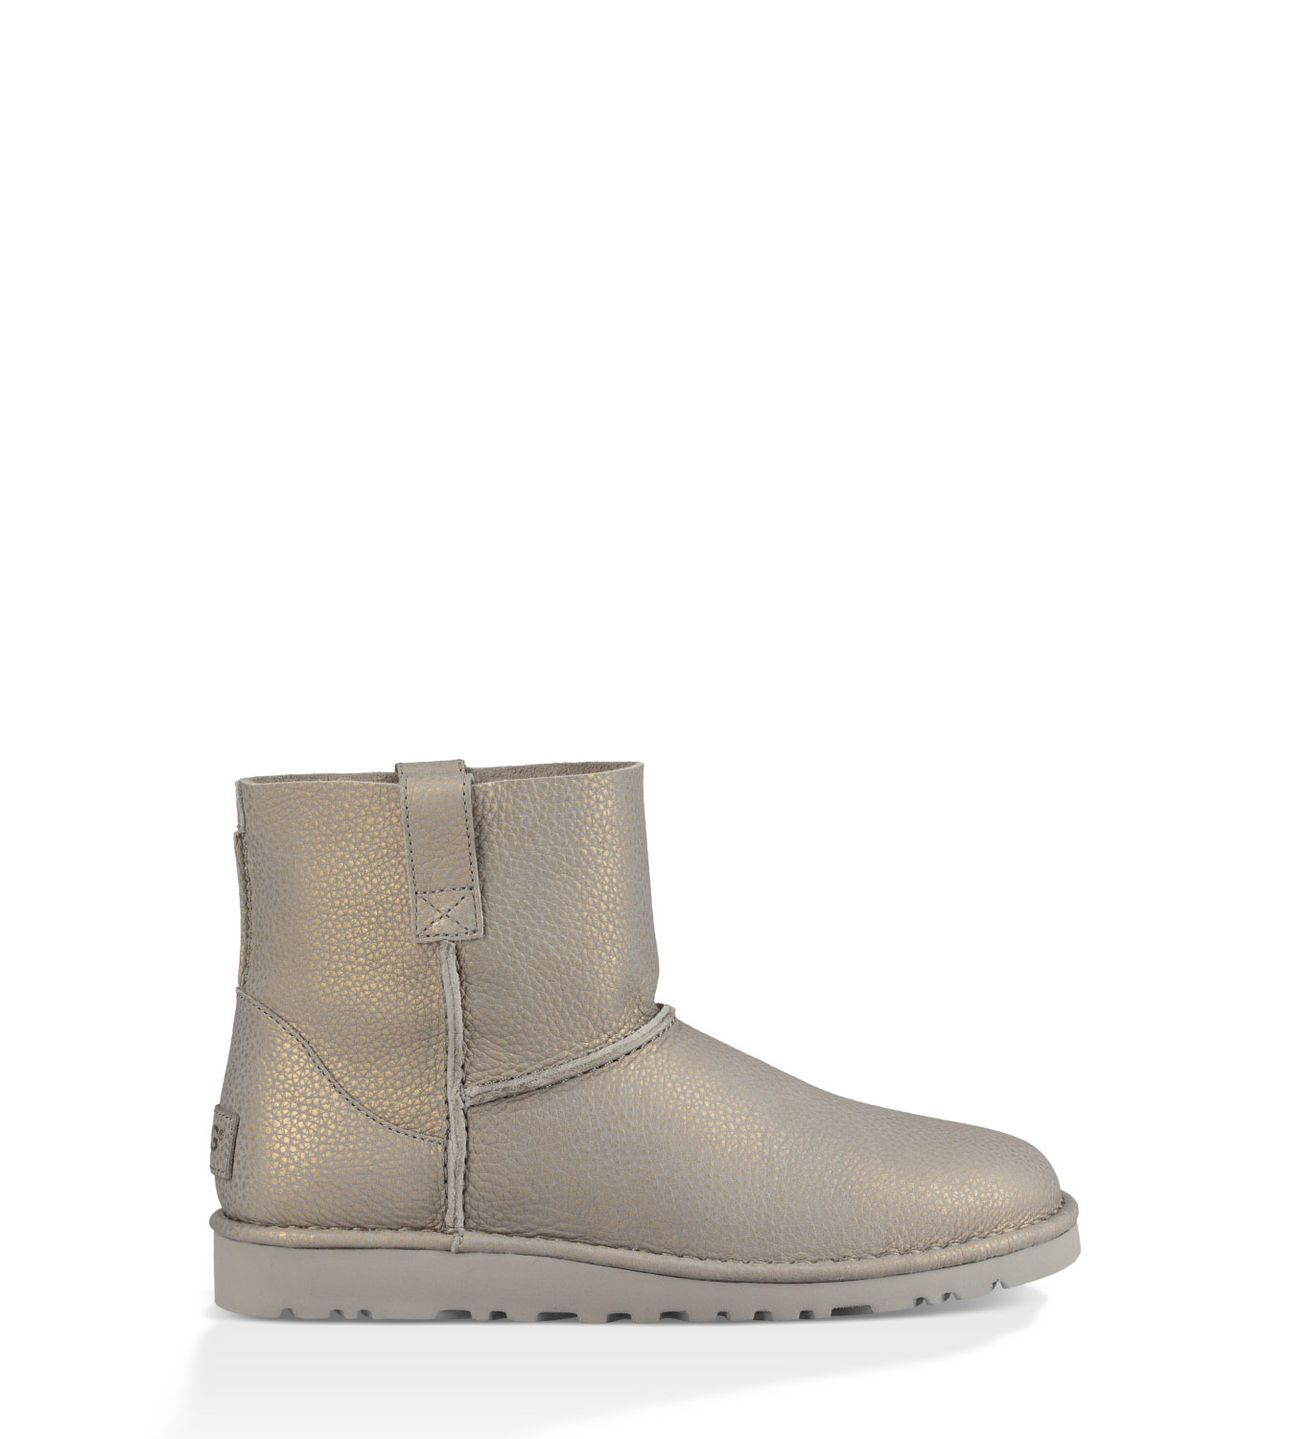 Ugg Australia W Quincy Ankle Boots Color Brown  Women